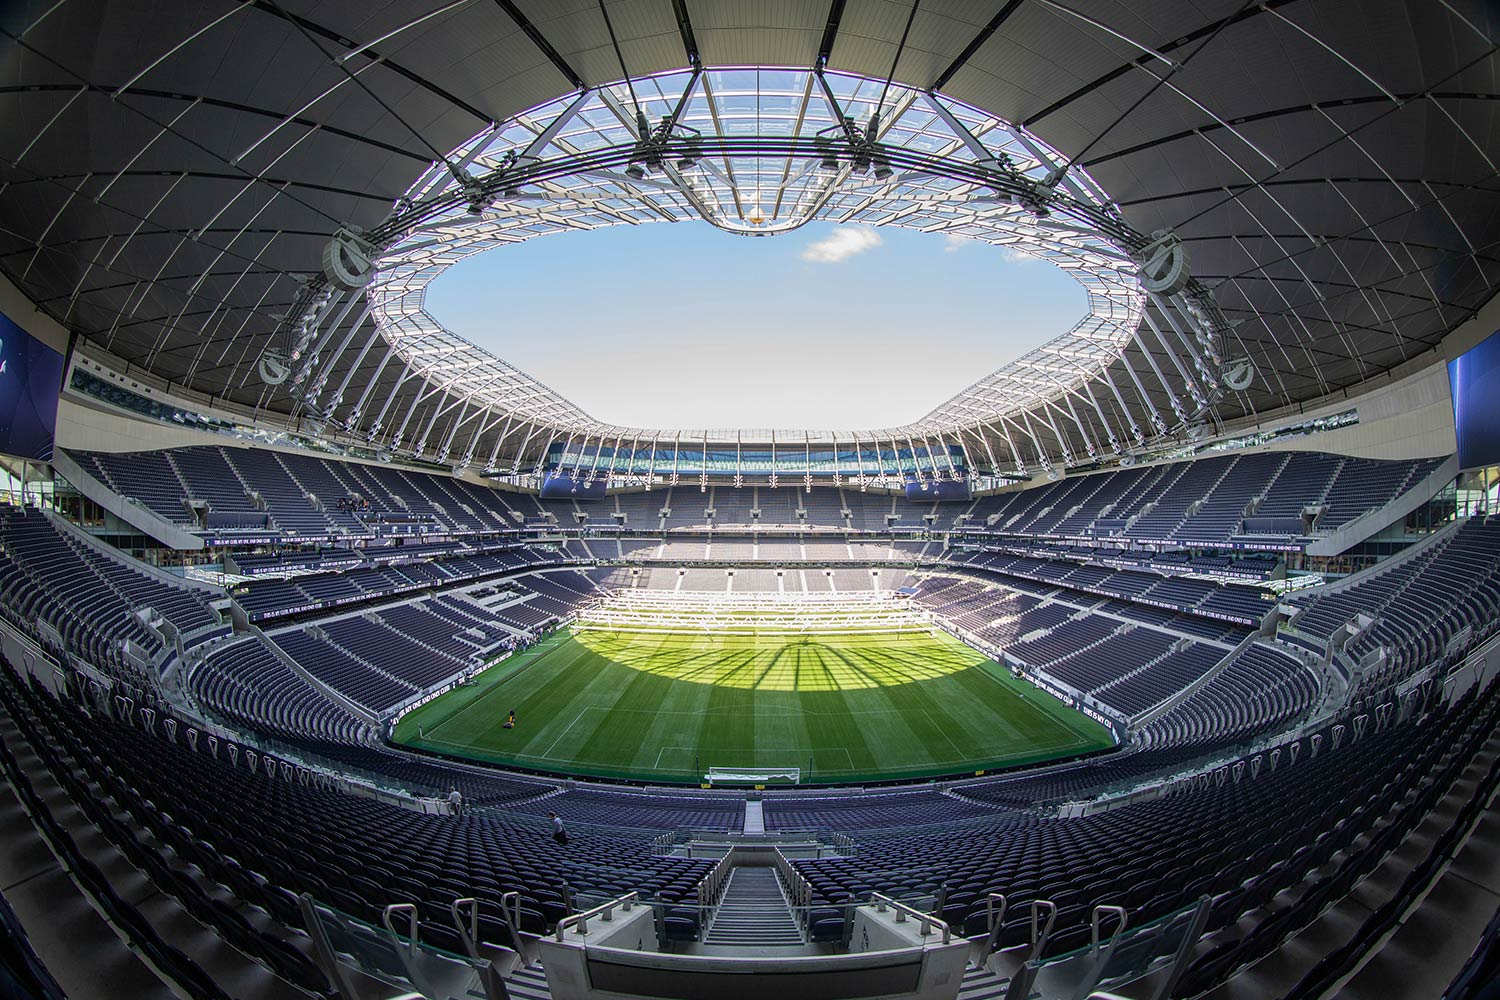 View of Tottenham Hotspur Football Club's innovative pitch from the stadium stands